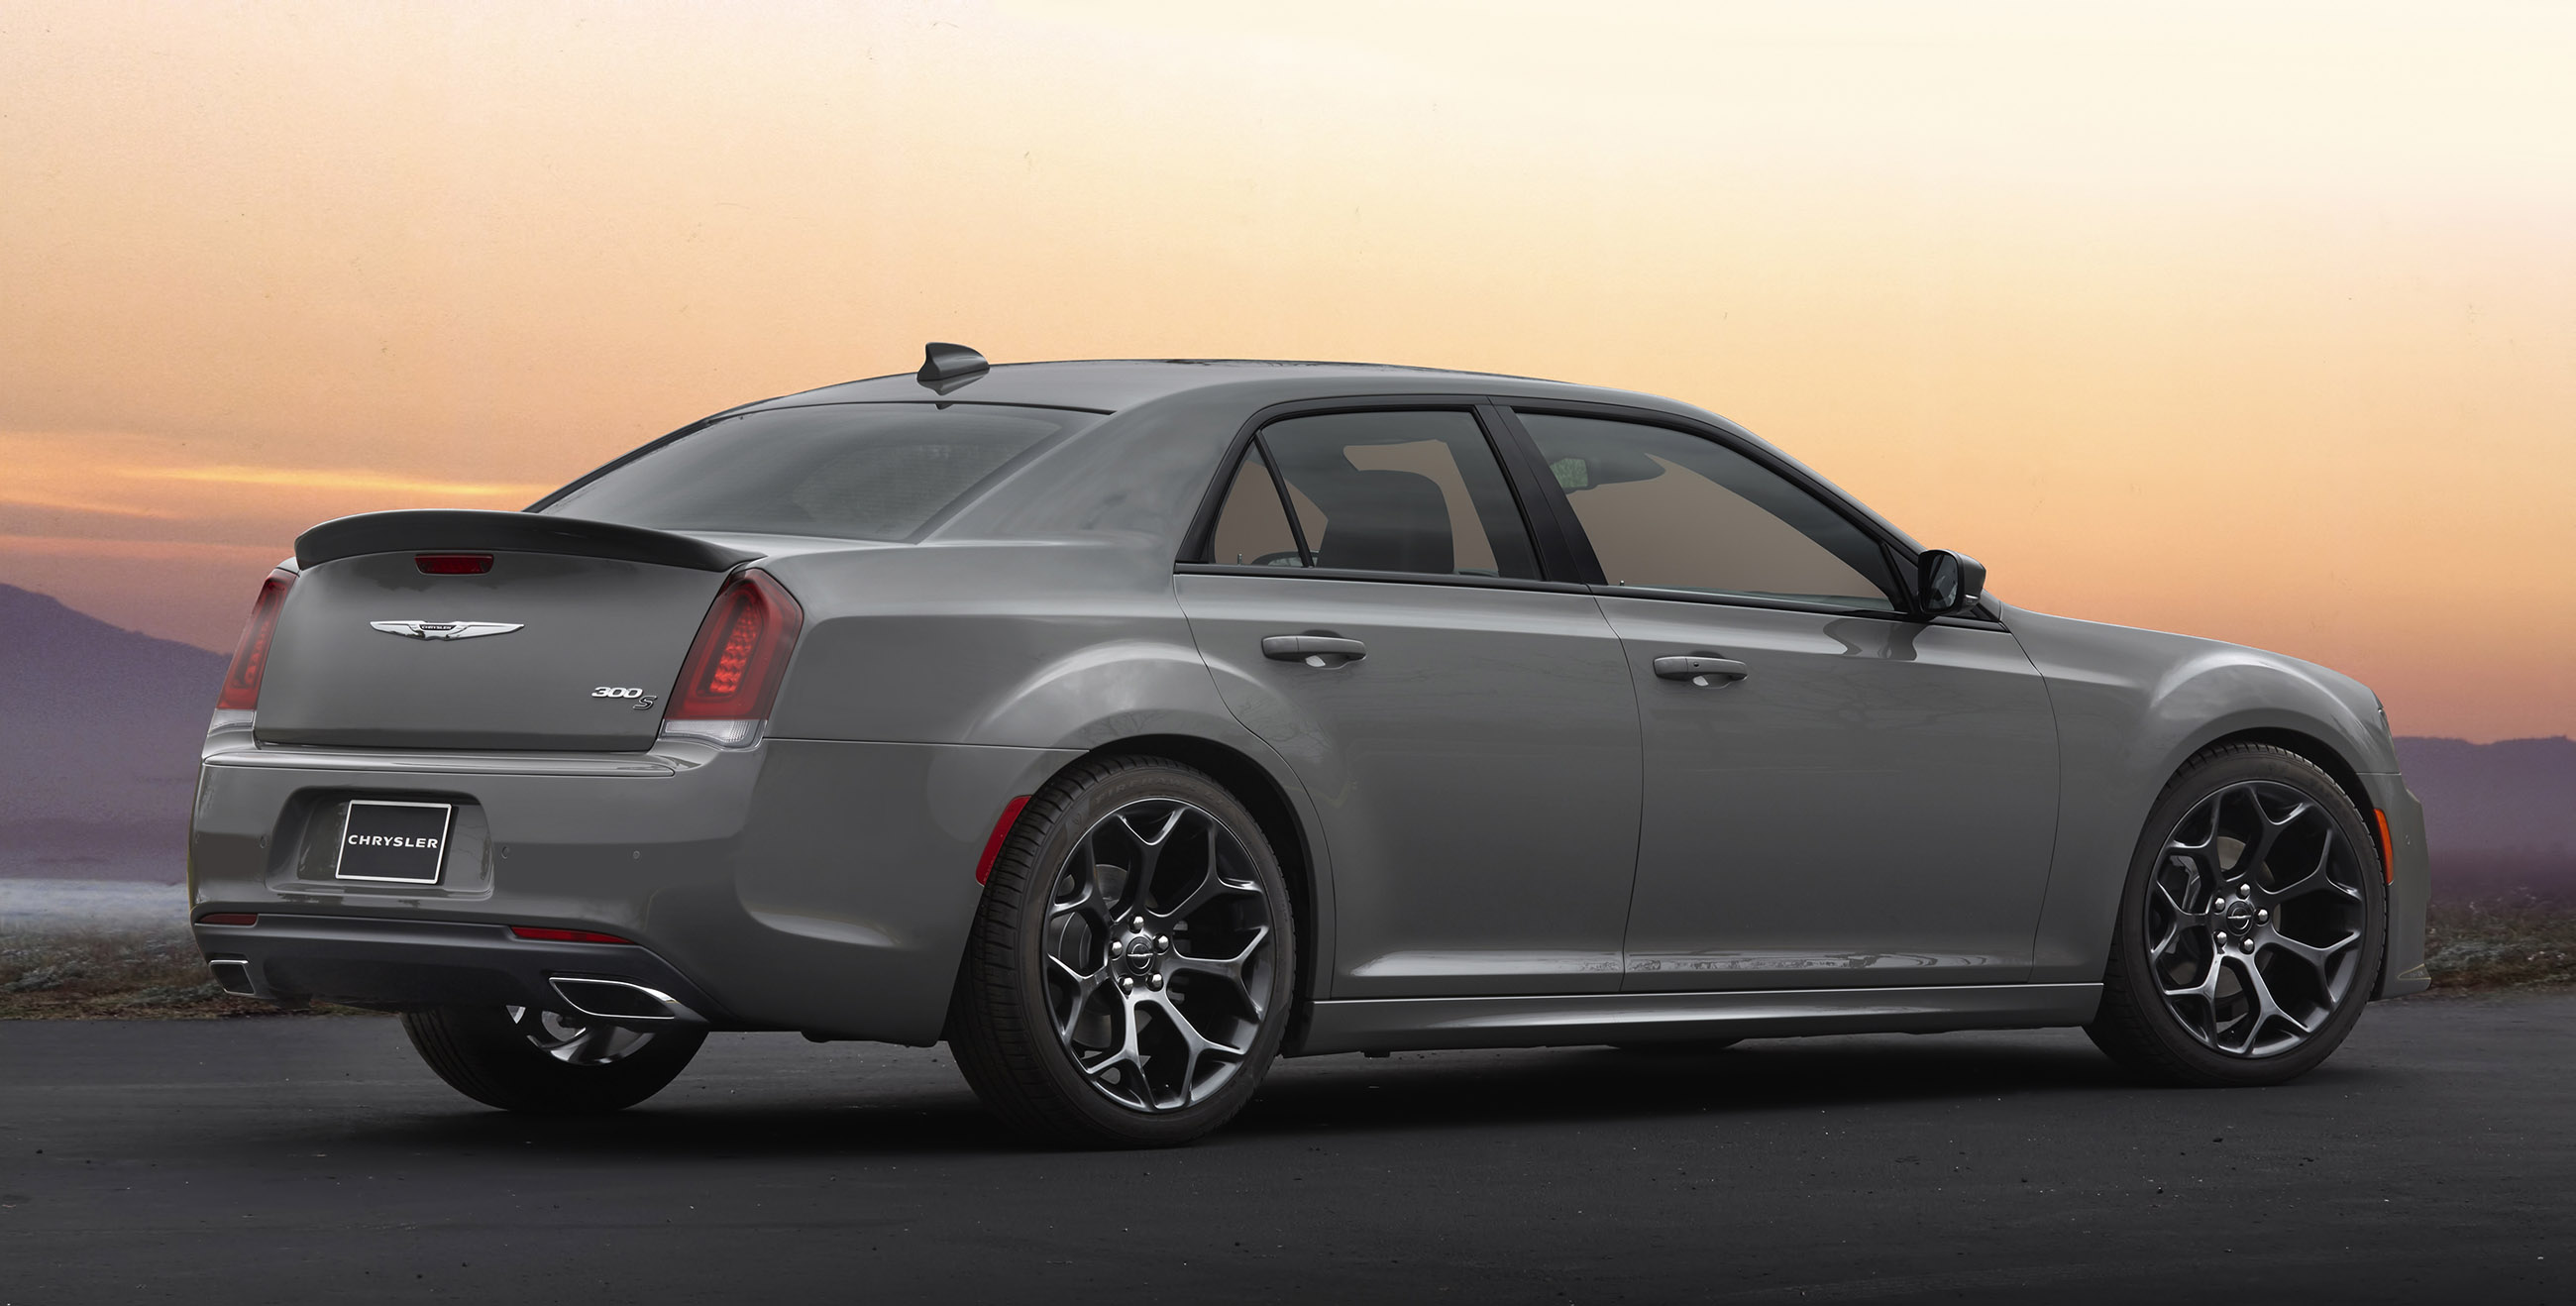 2017 Chrysler 300S Sport Appearance Packages